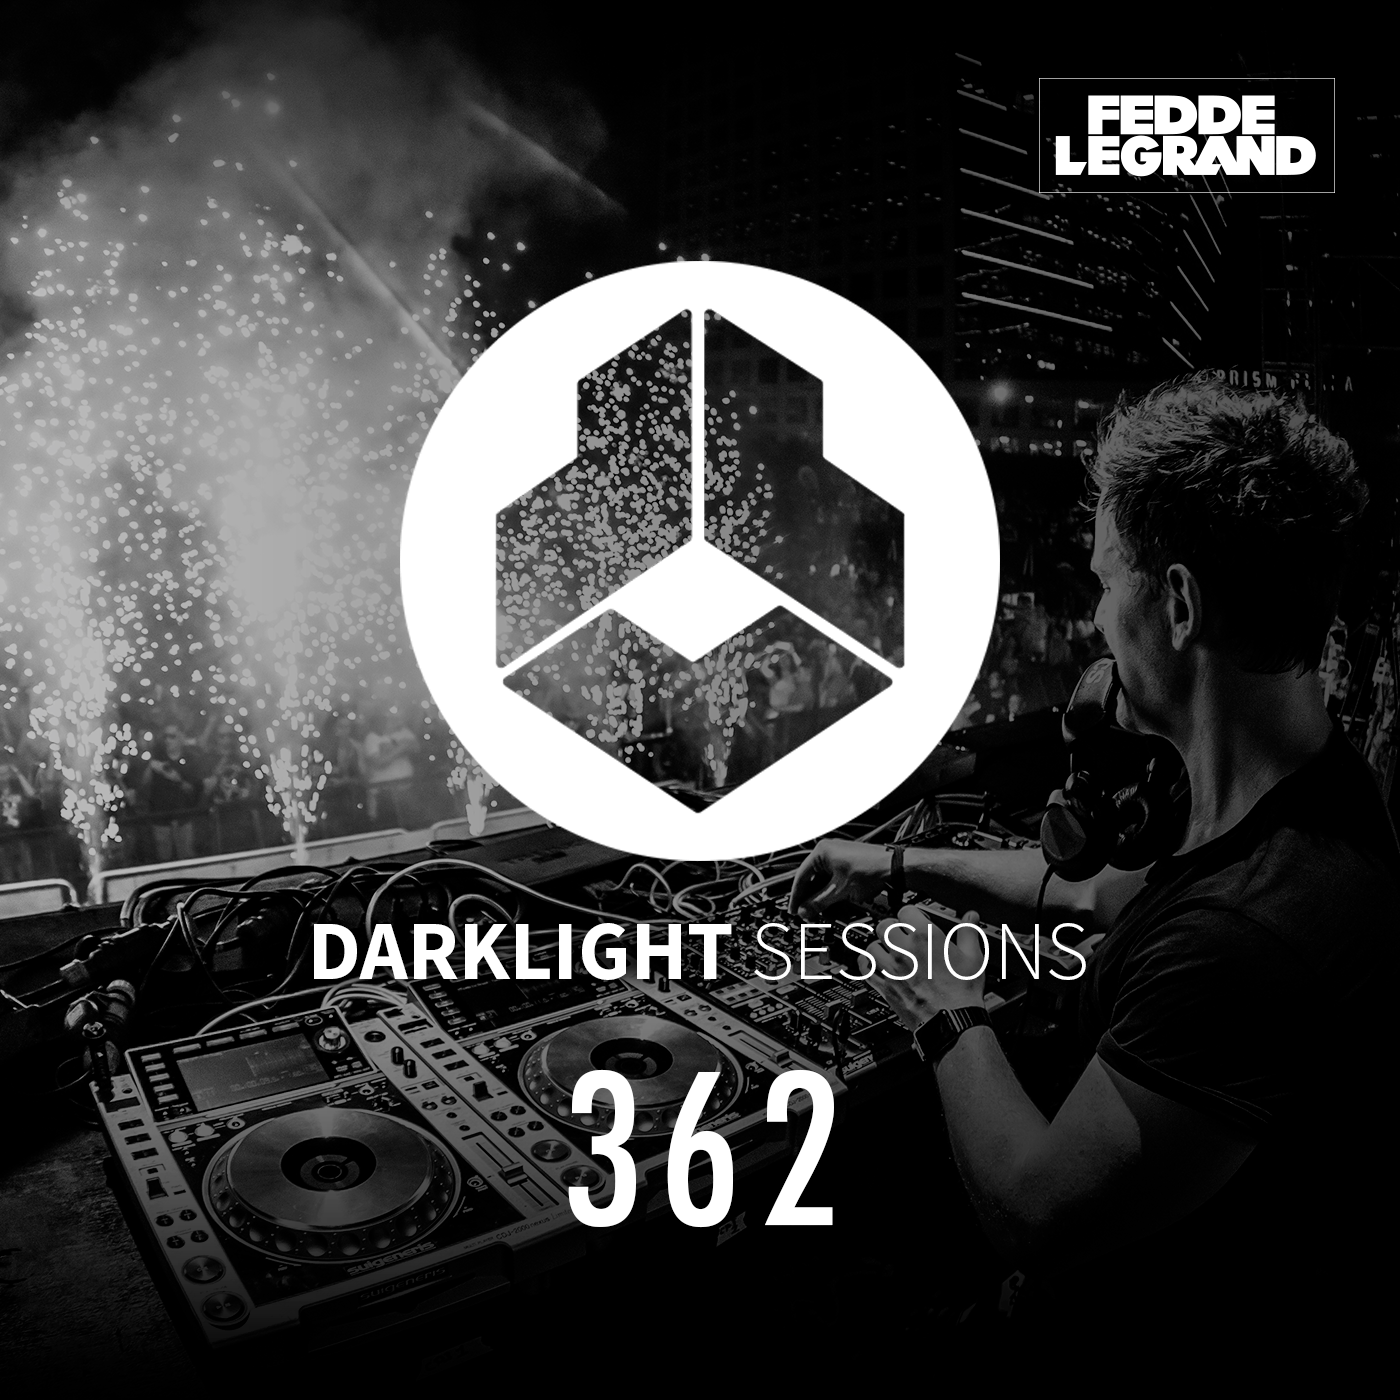 Darklight Sessions 362